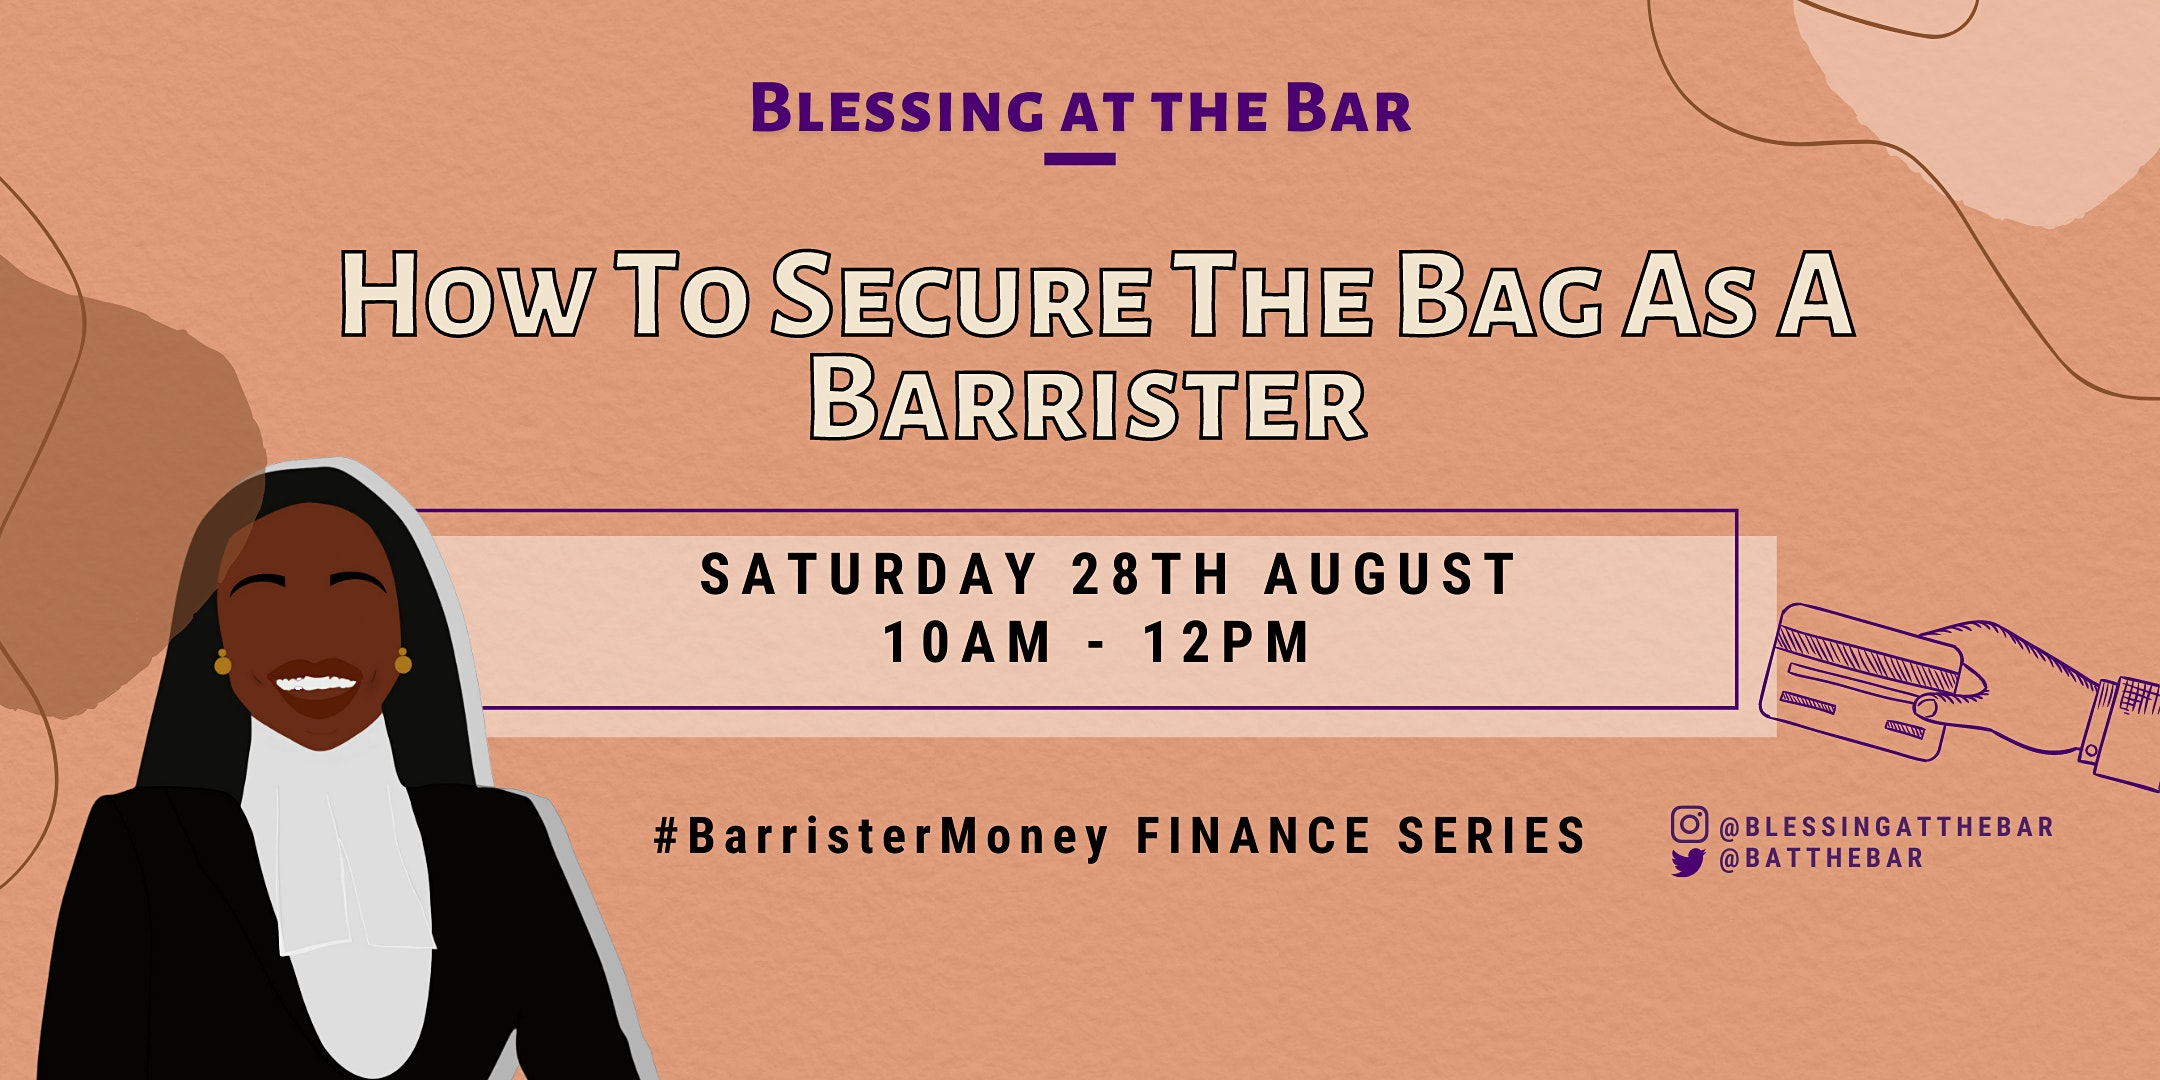 BATB FINANCE SERIES: How To Secure The Bag As A Barrister